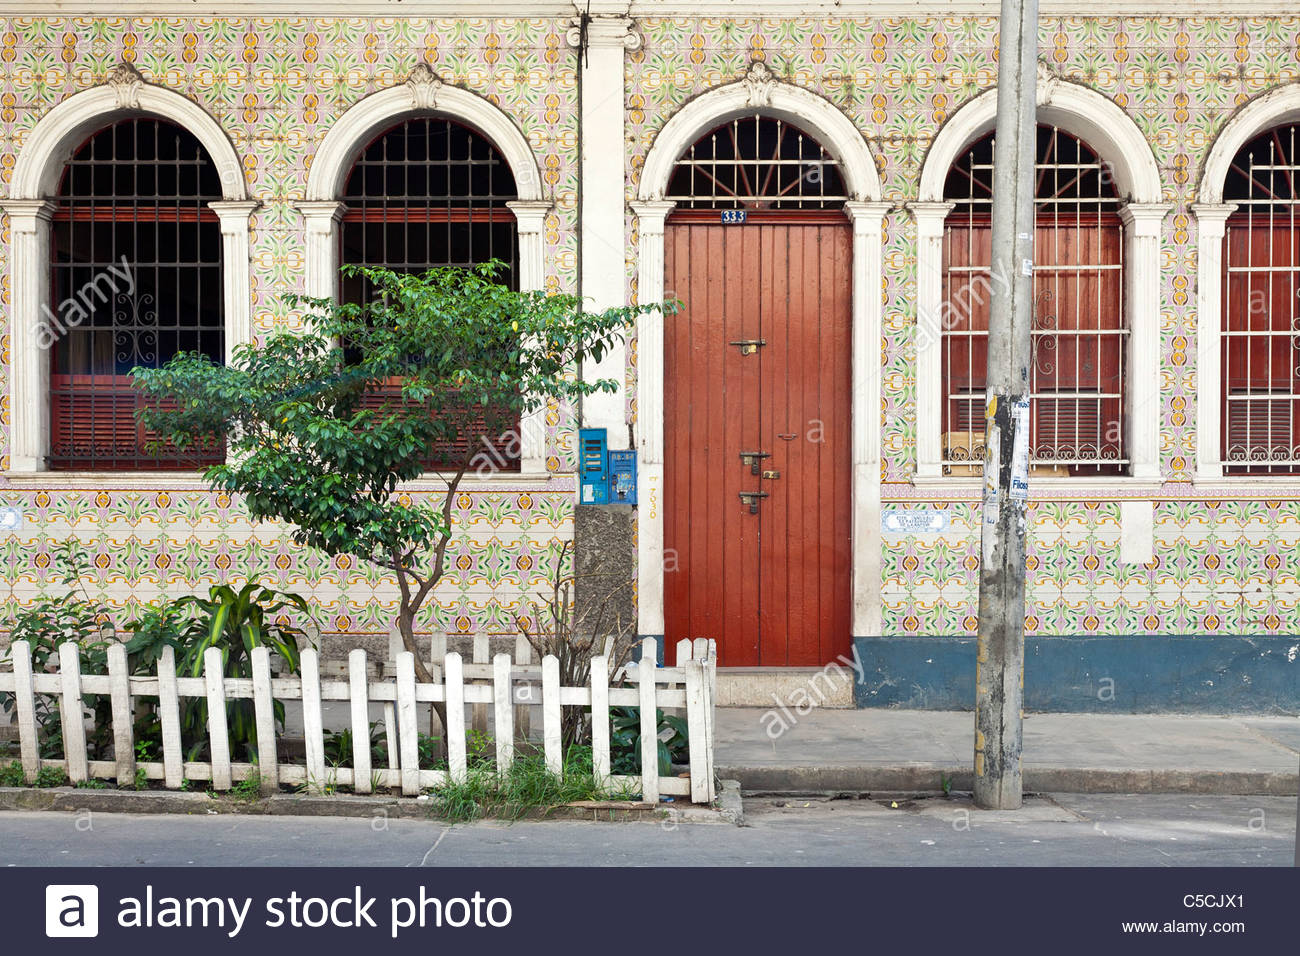 A building in central Iquitos covered in handmade Azulejos tiles imported from Portugal, Iquitos, Loreto, Peru - Stock Image